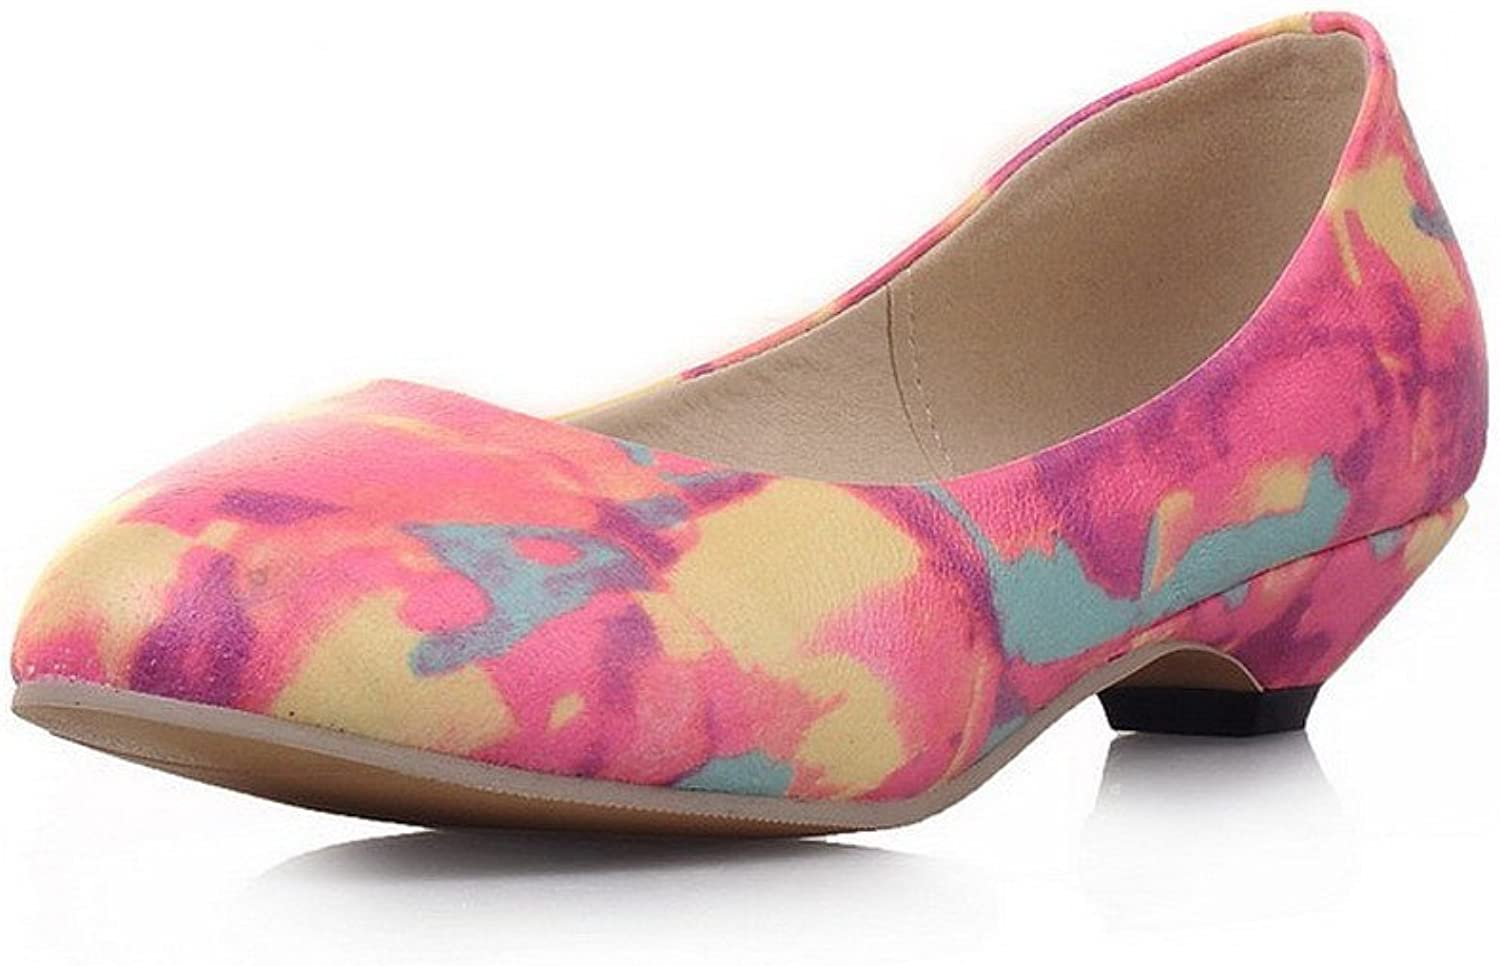 WeenFashion Women's Pull On Low Heels Pu Assorted color Round Closed Toe Pumps-shoes